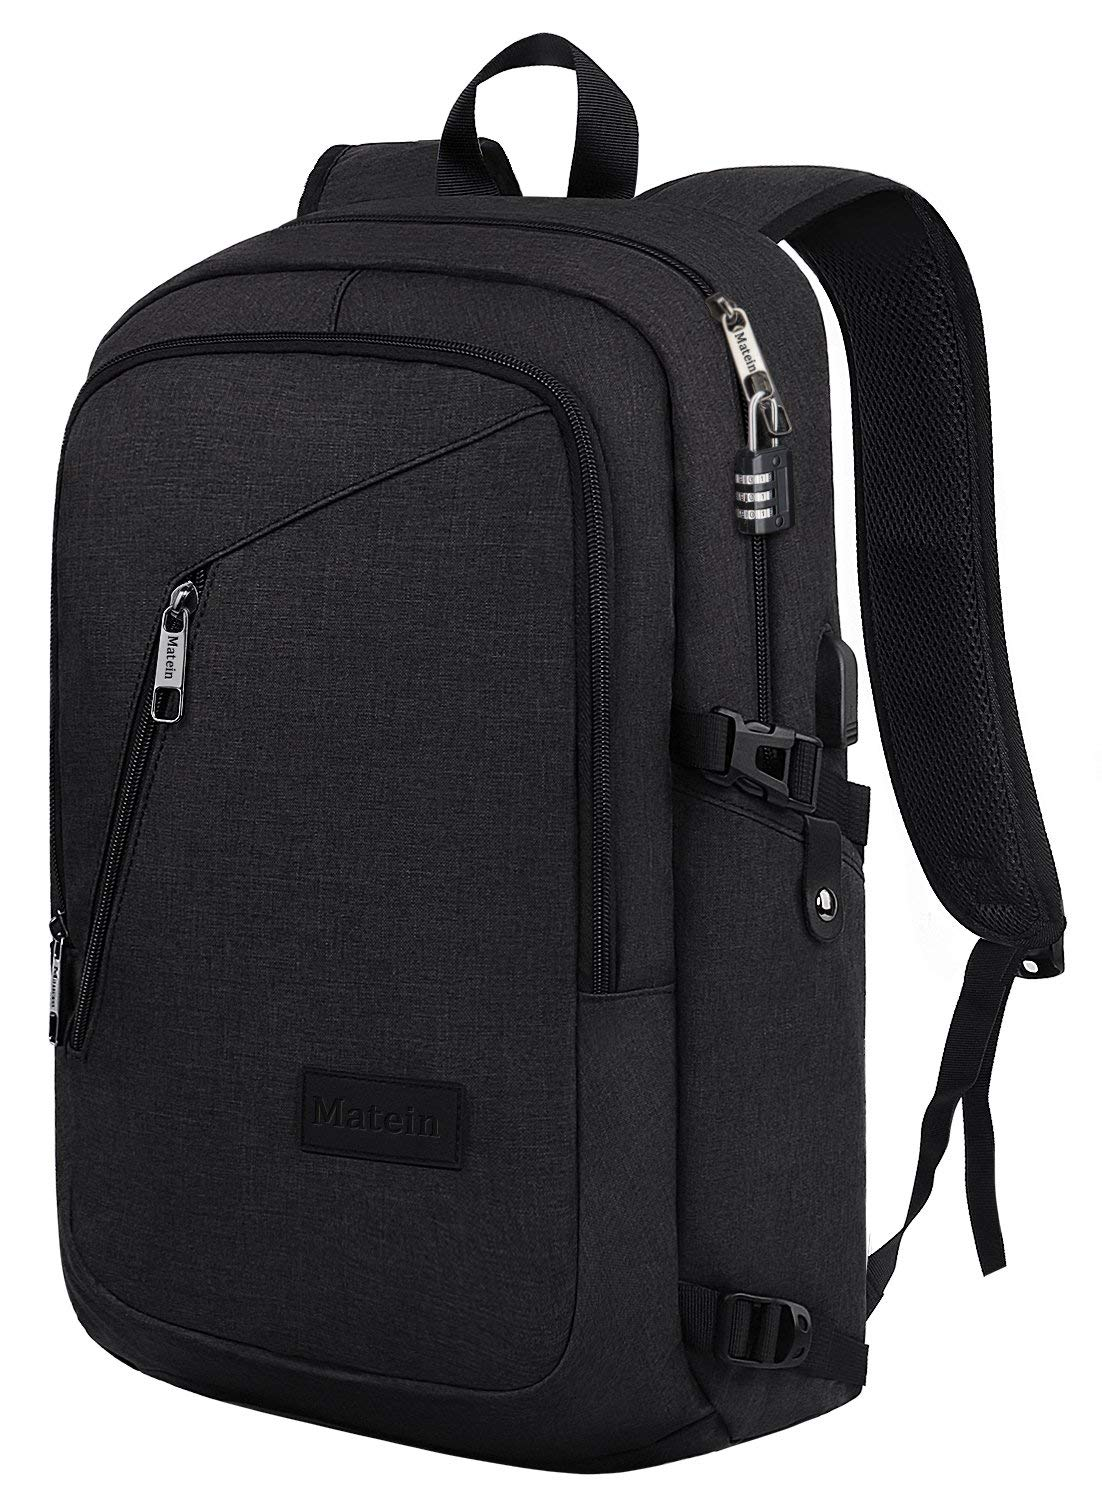 36fce230a35e1a Best laptop backpacks 2018: These are the ones reviewers love